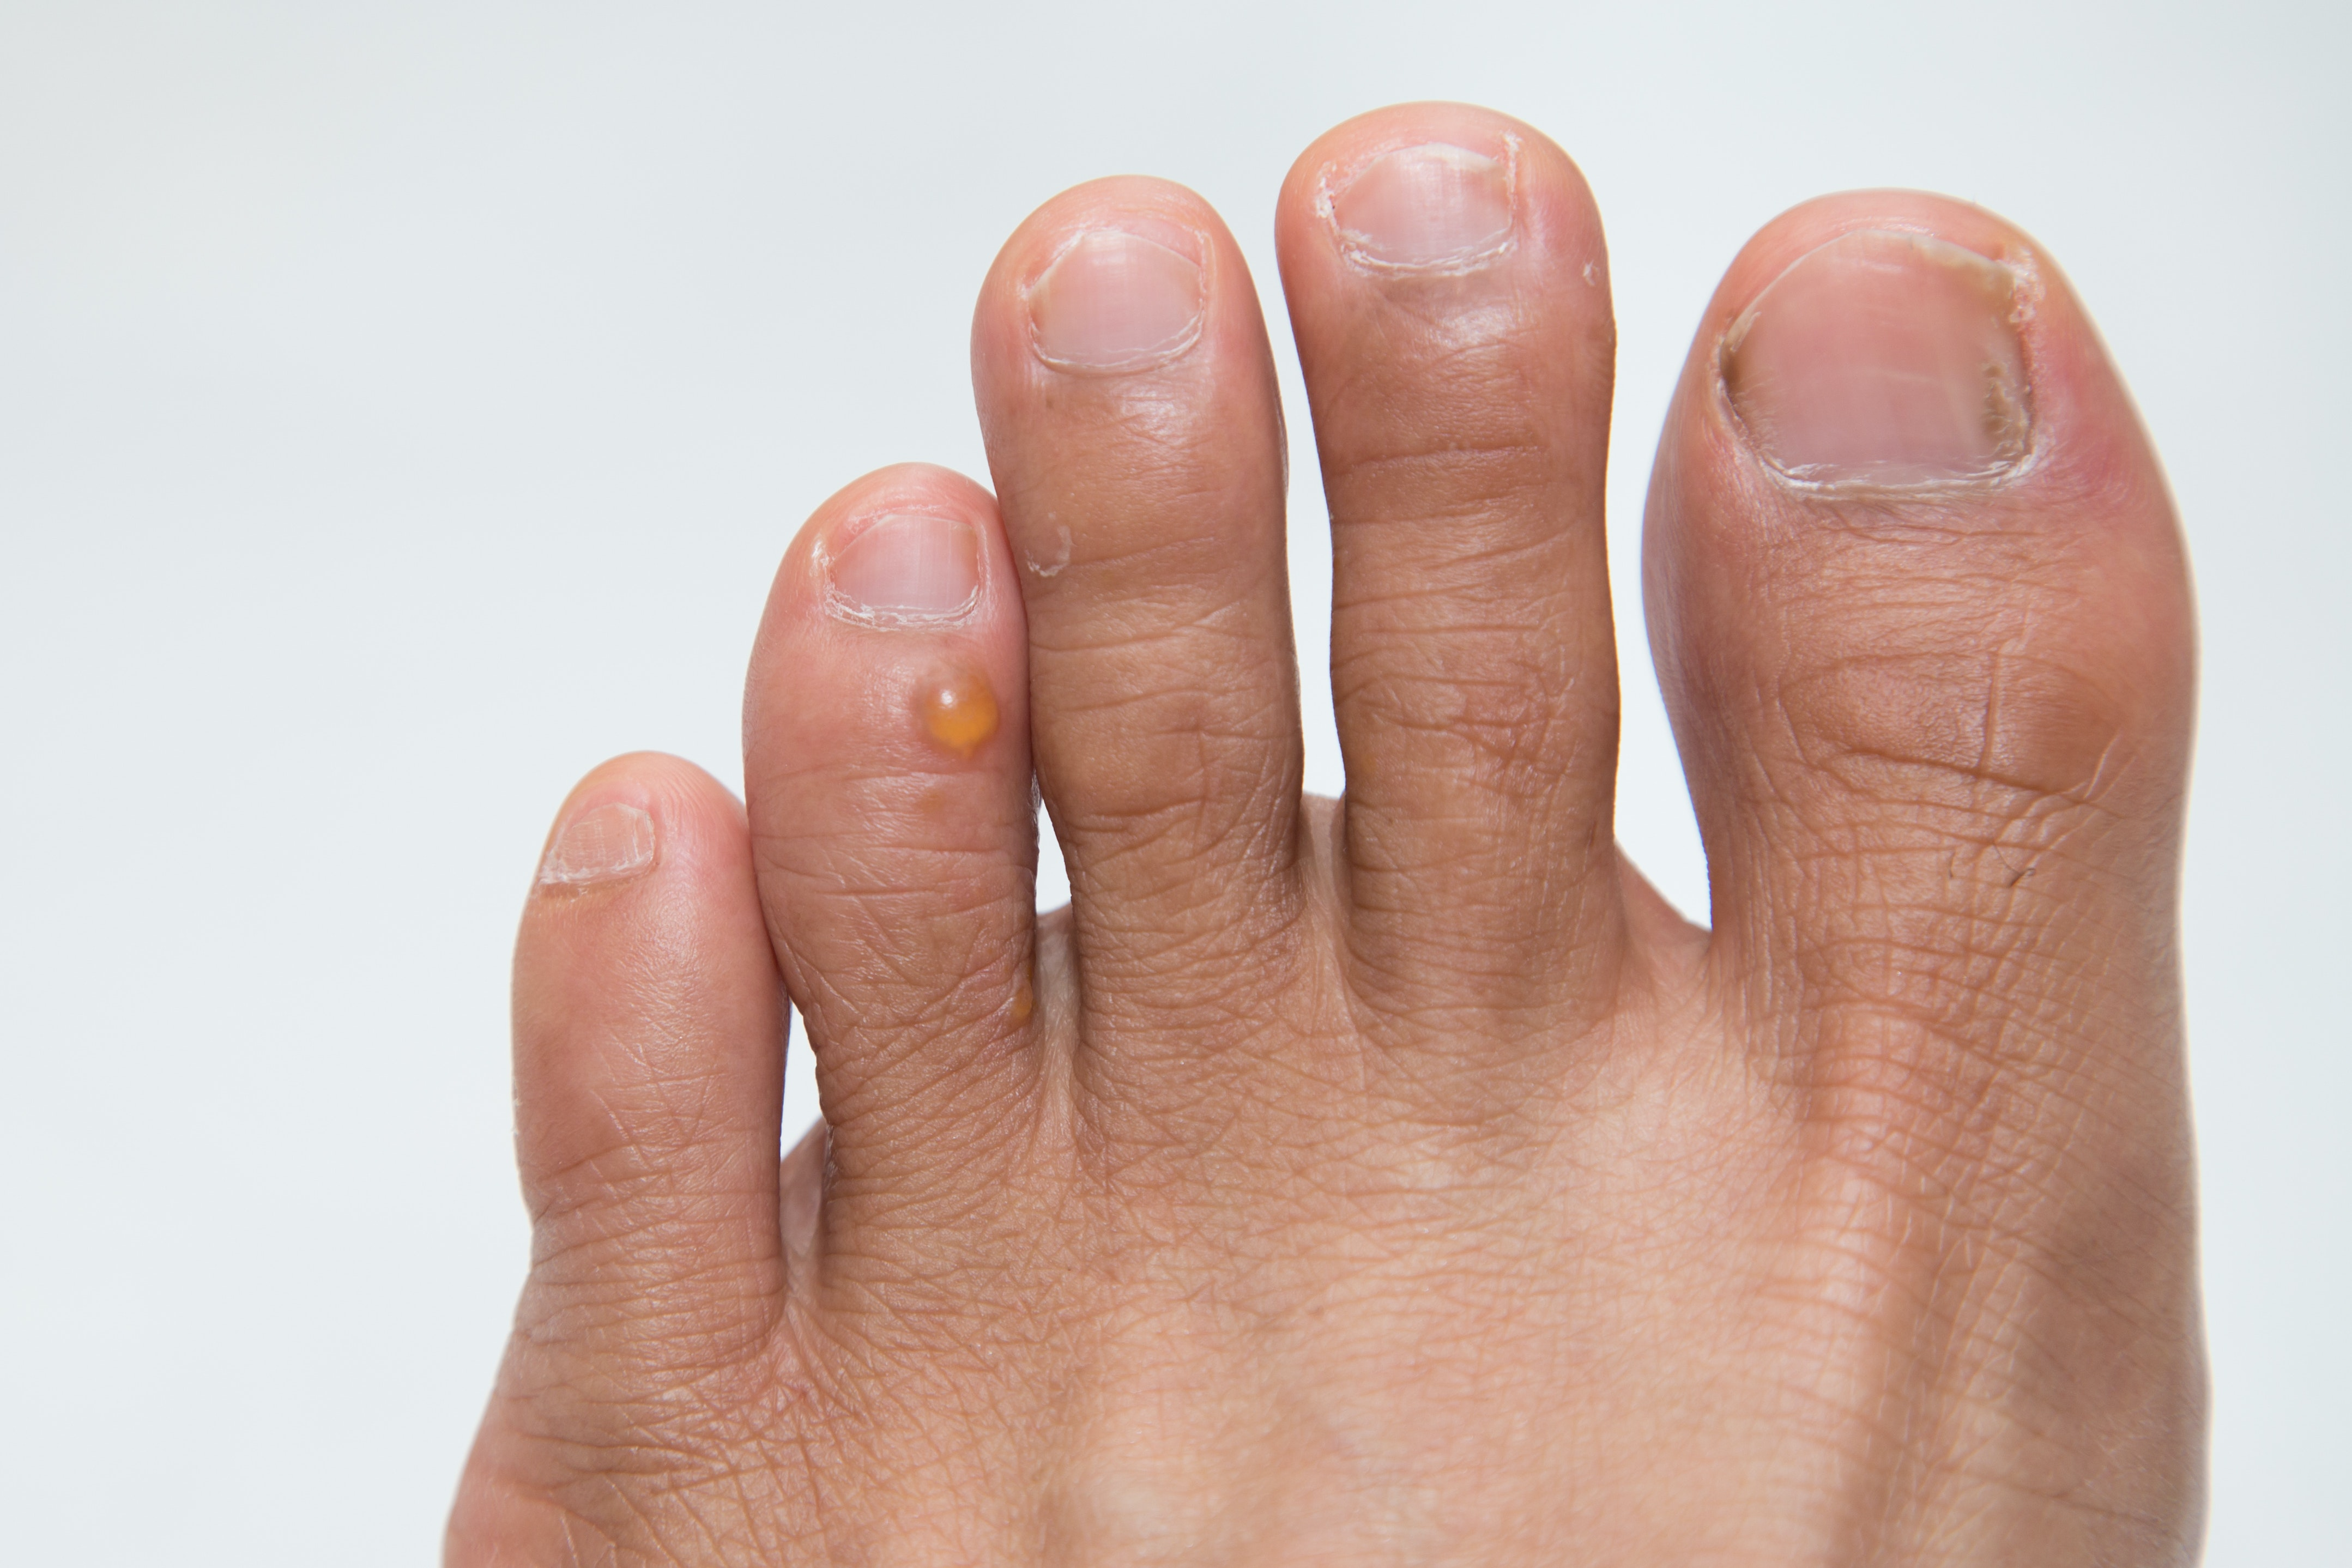 An image depicting a person suffering from foot bump symptoms